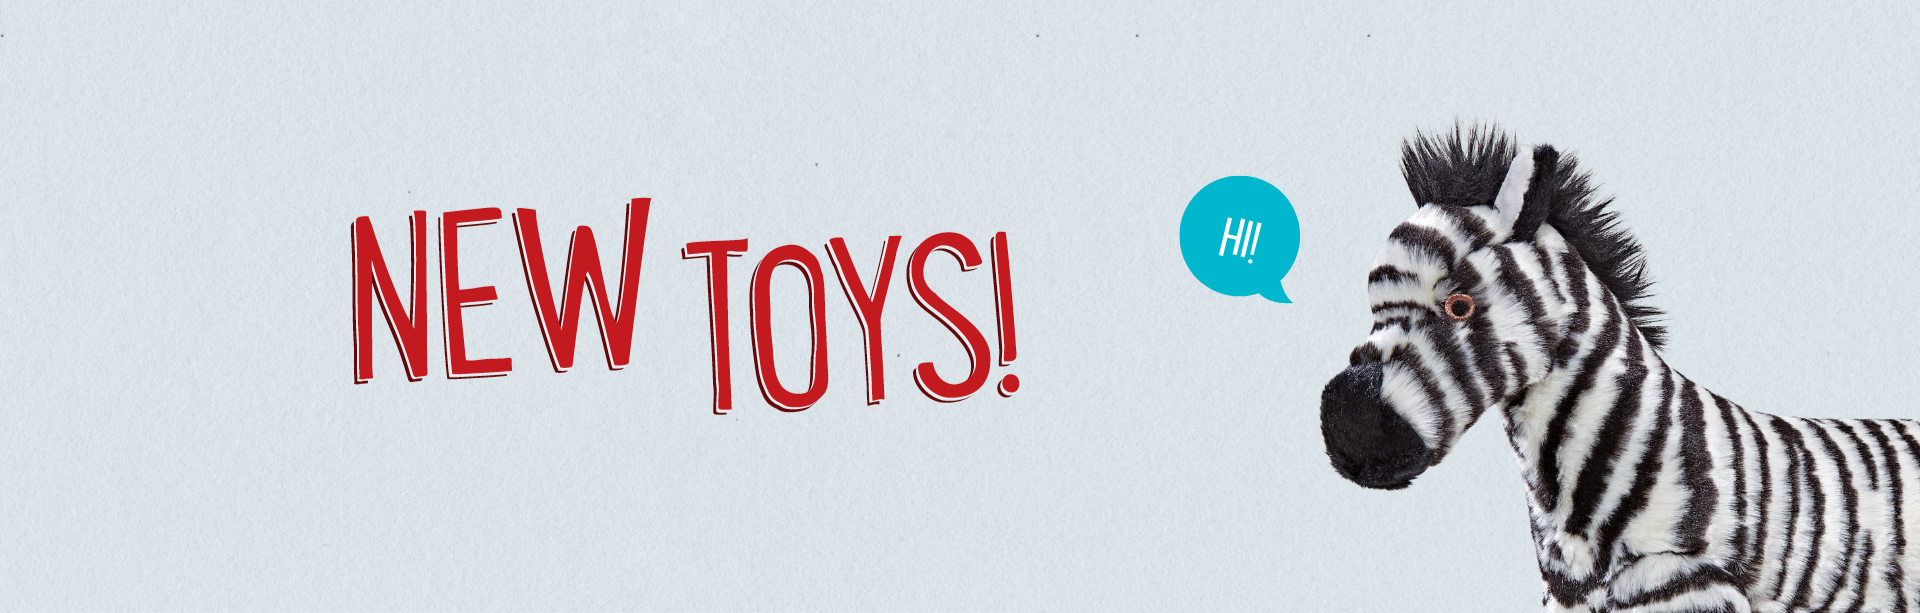 spring-2021-new-toys-banner.png